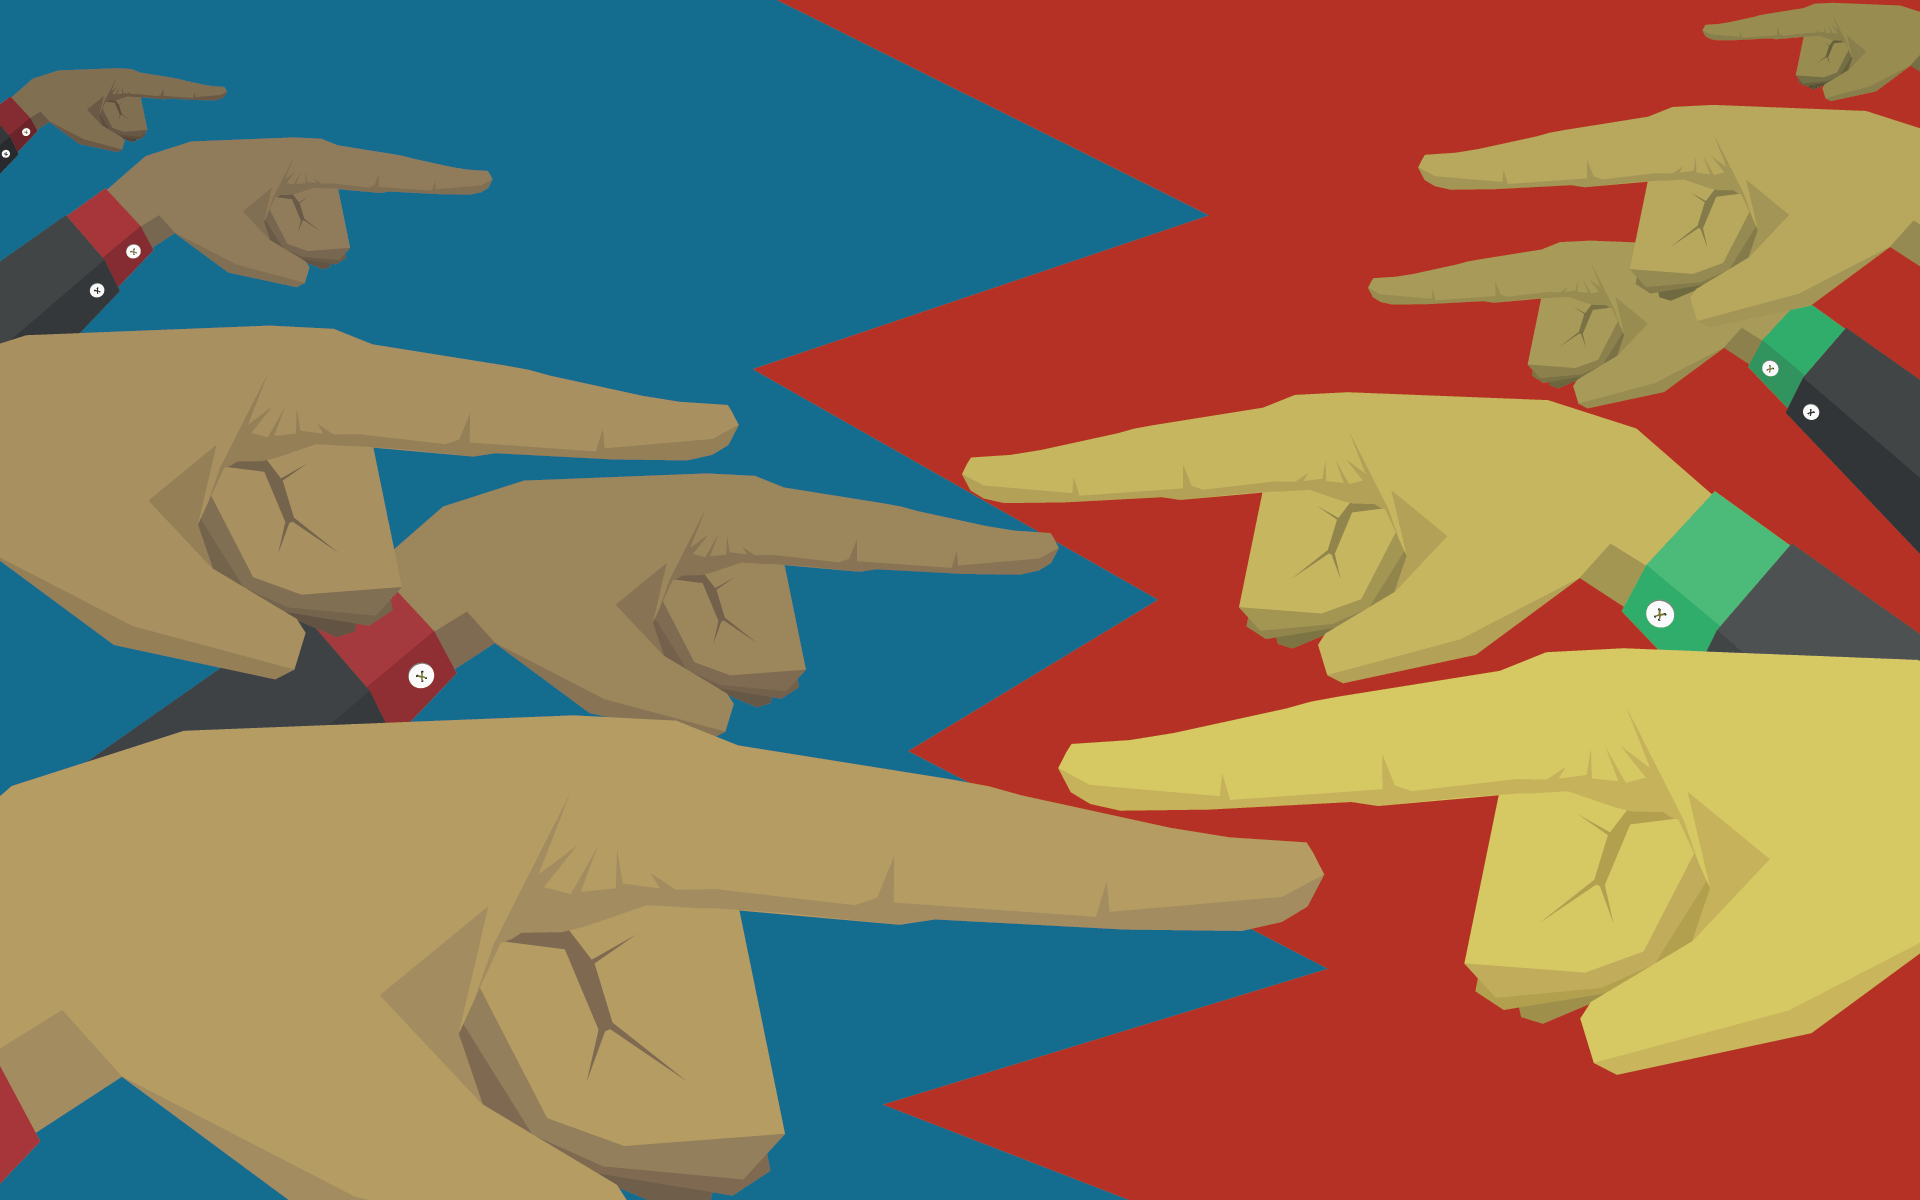 fingers pointing